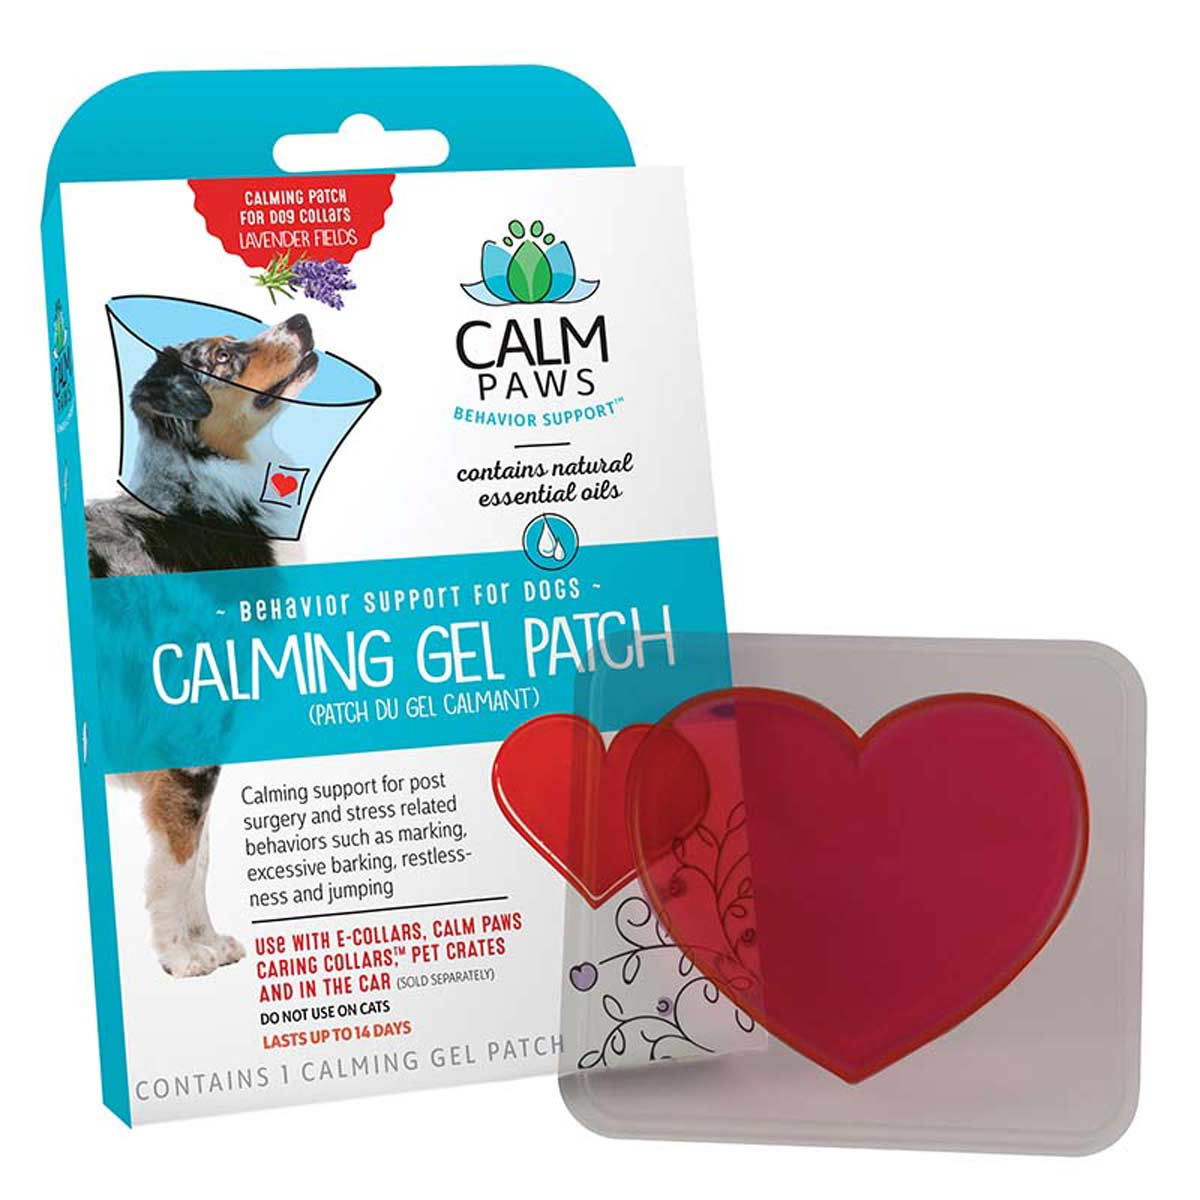 Box of Calm Paws Calming Gel Patch for Dogs